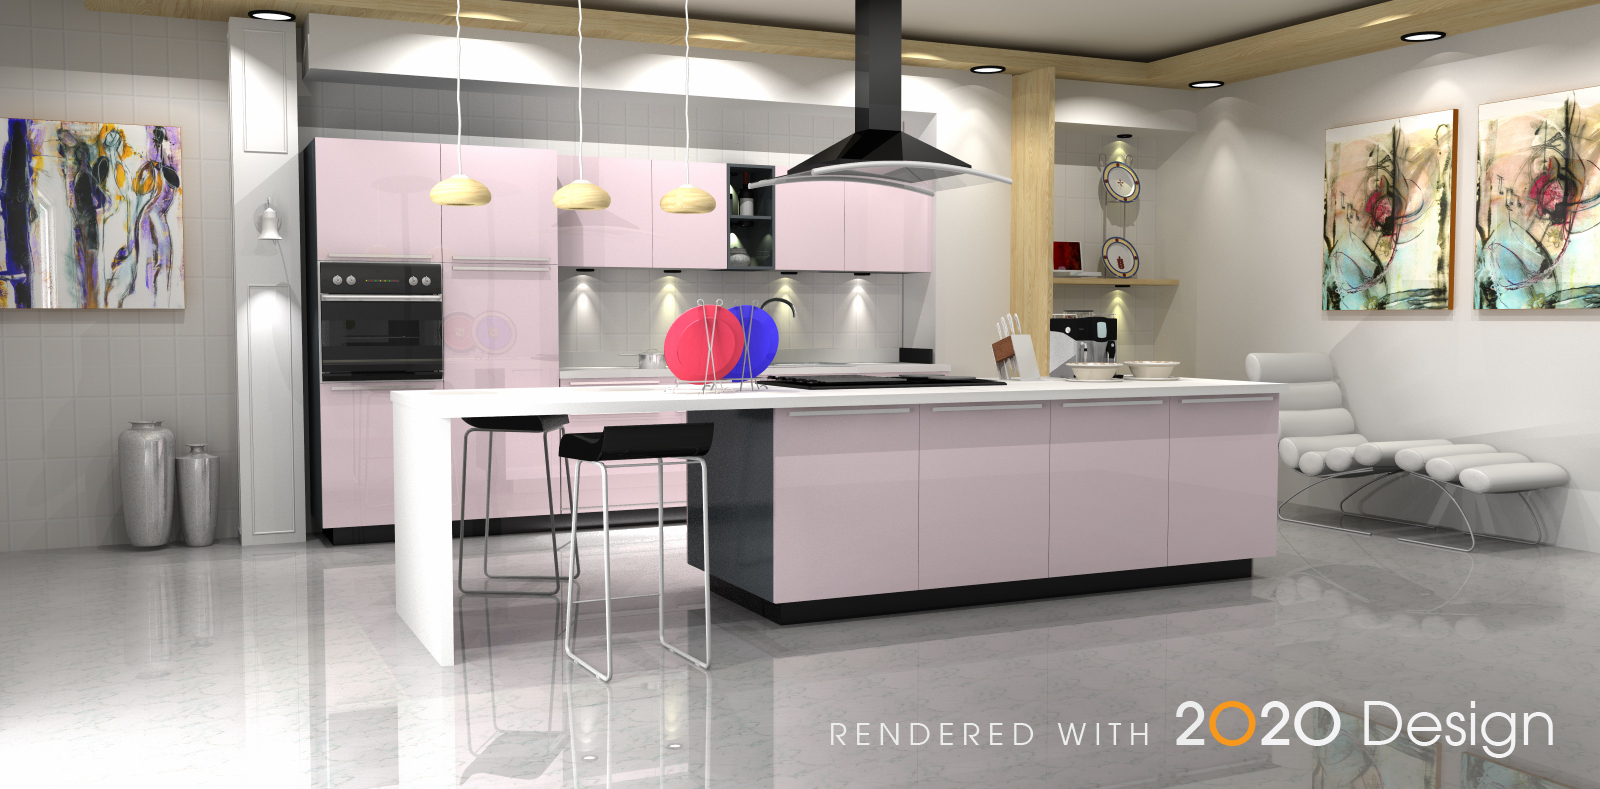 Kitchen And Bath Design Education 2020 Announces Cloud Based Delivery Of Kitchen Design Software